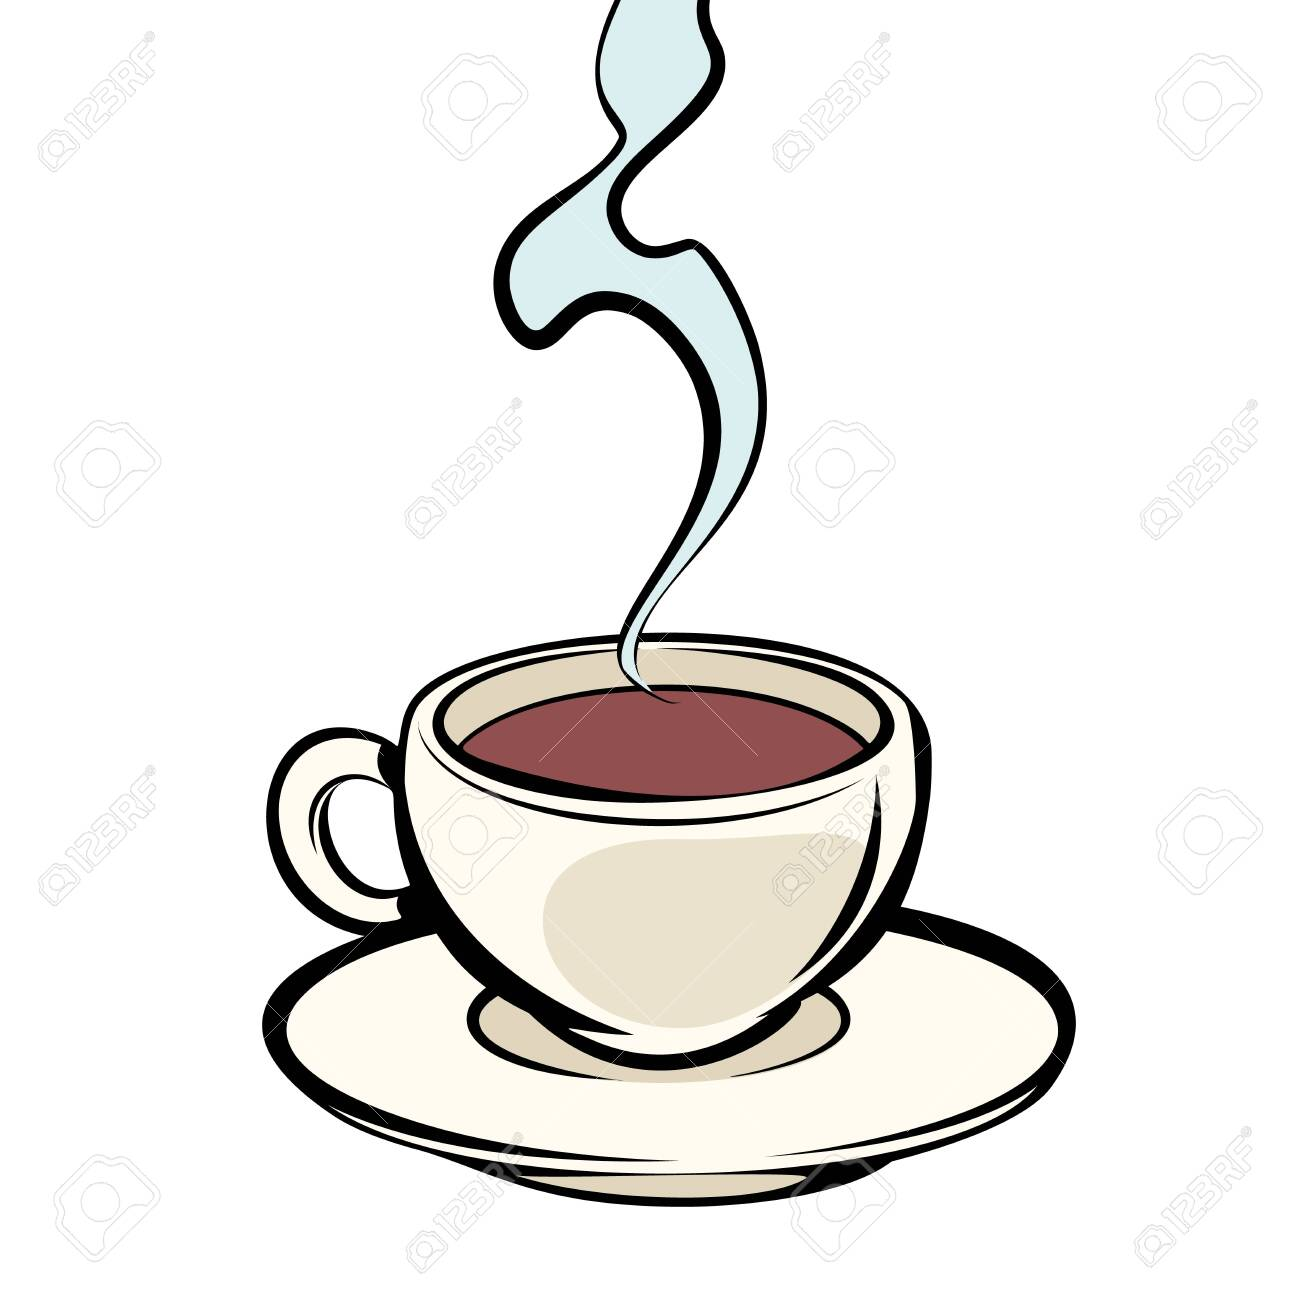 Cup Of Hot Coffee Comic Cartoon Pop Art Vector Retro Vintage Royalty Free Cliparts Vectors And Stock Illustration Image 124158610